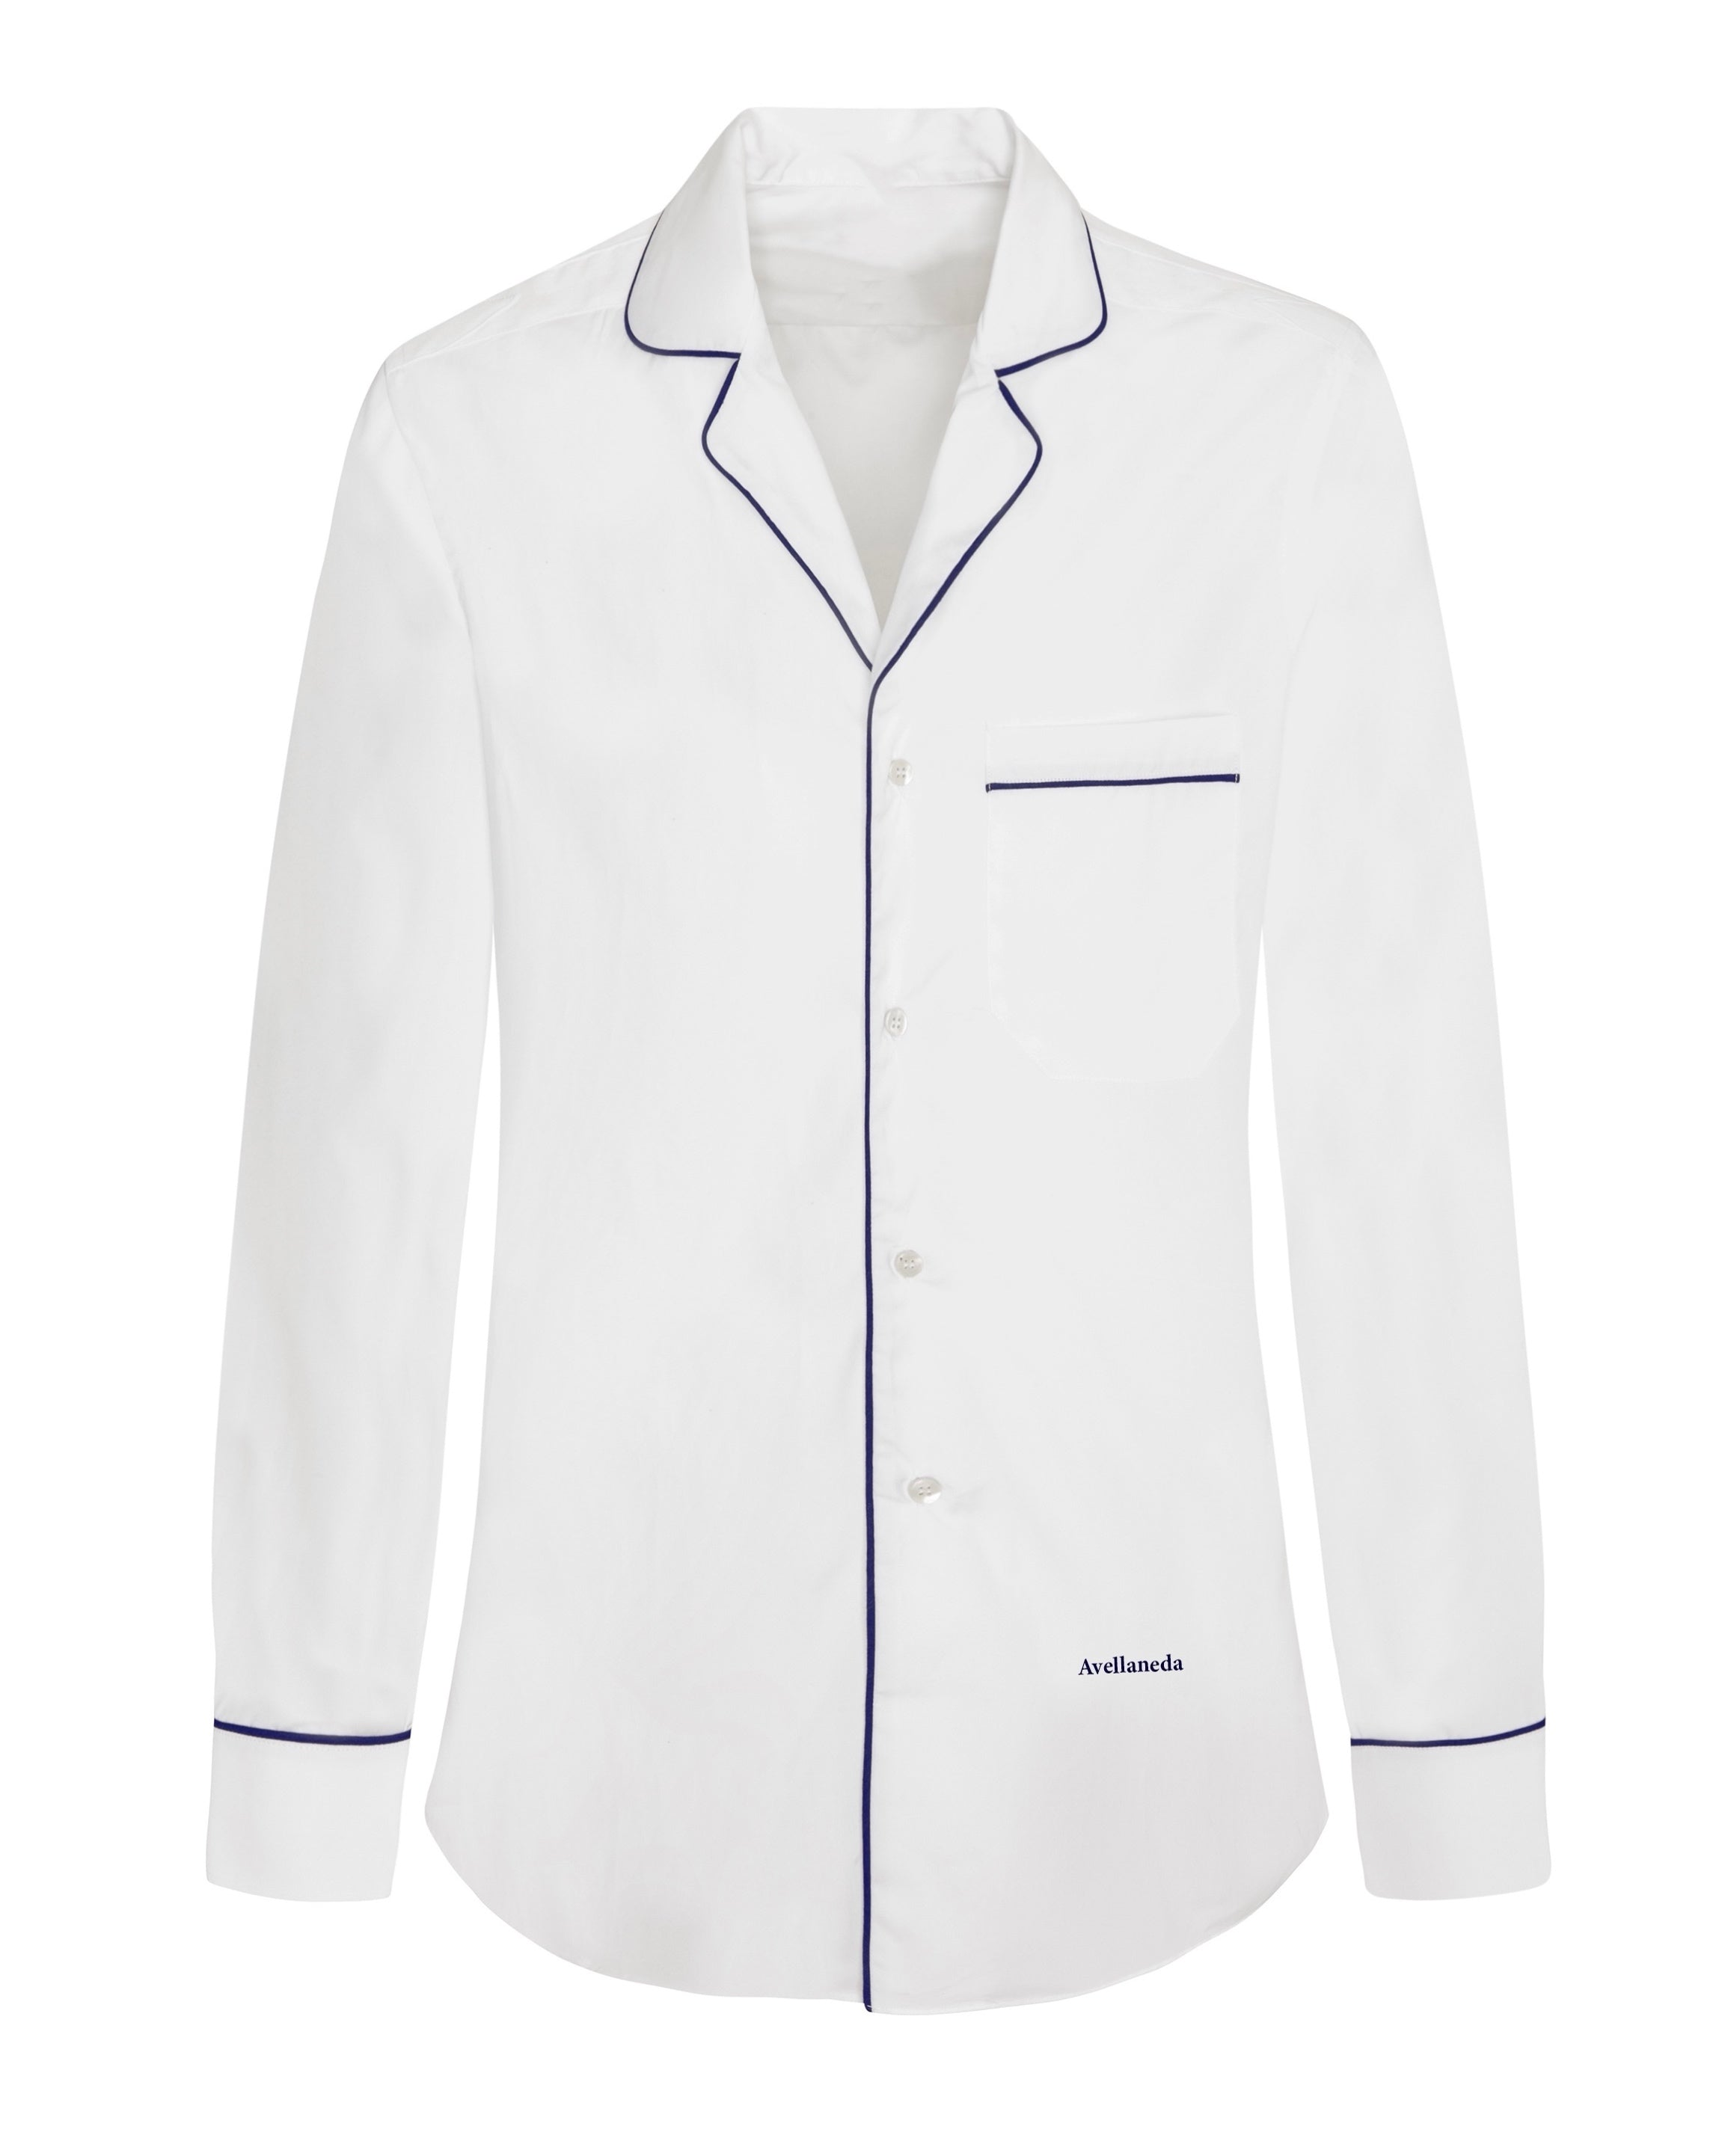 MEN'S PJ WHITE SHIRT